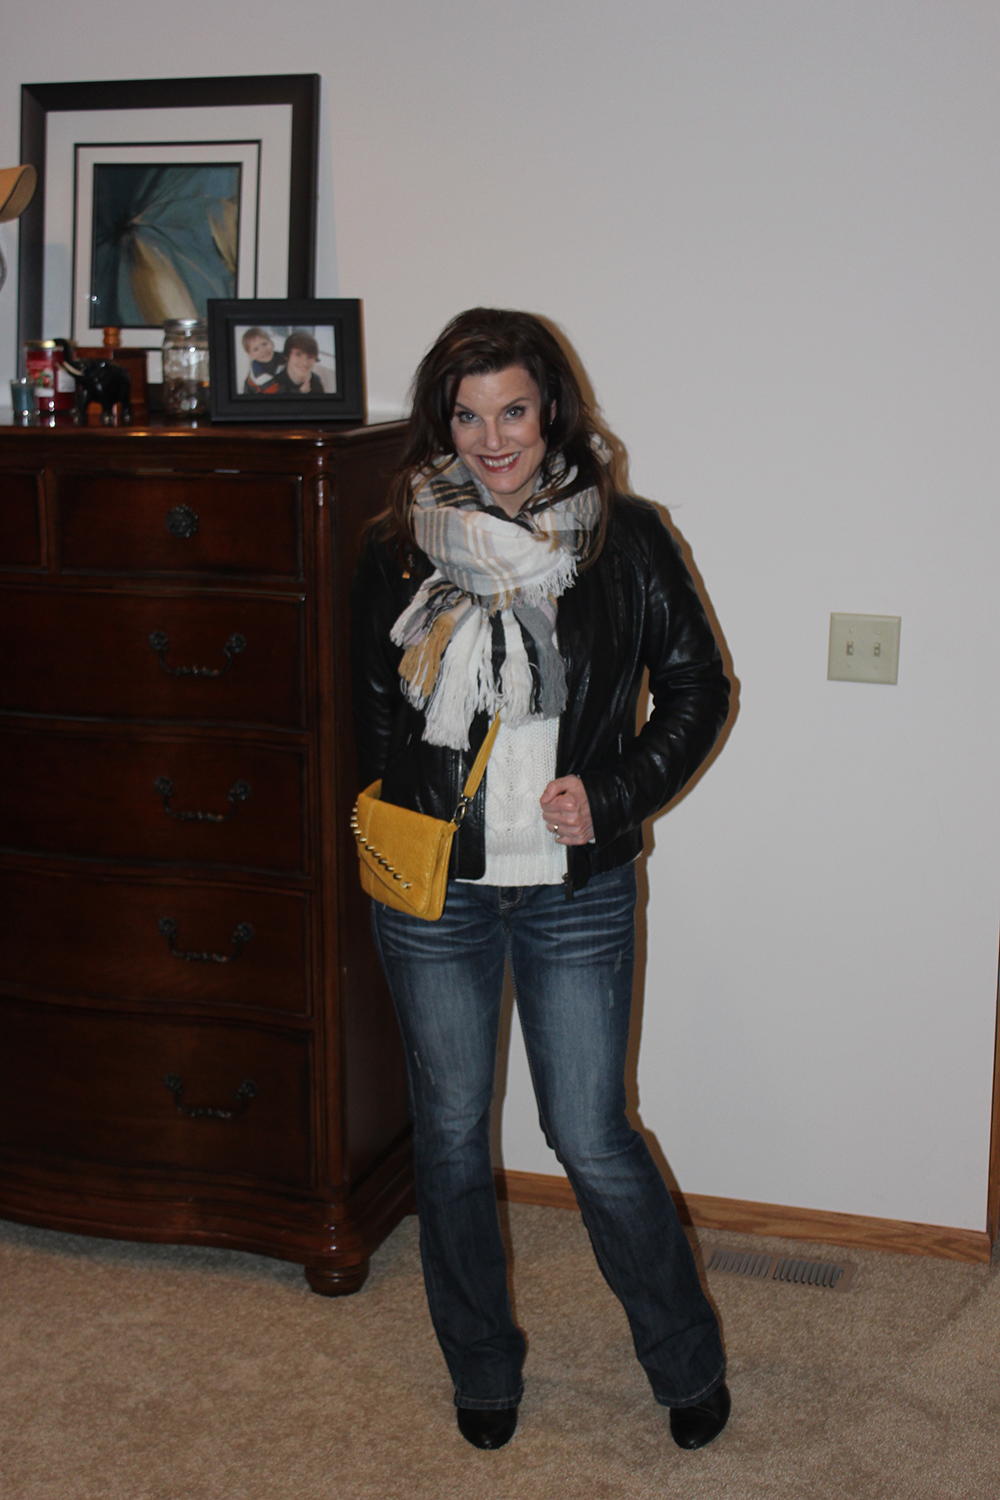 jen Schmidt, winter outfit, yellow bag, jeans, black leather jacket